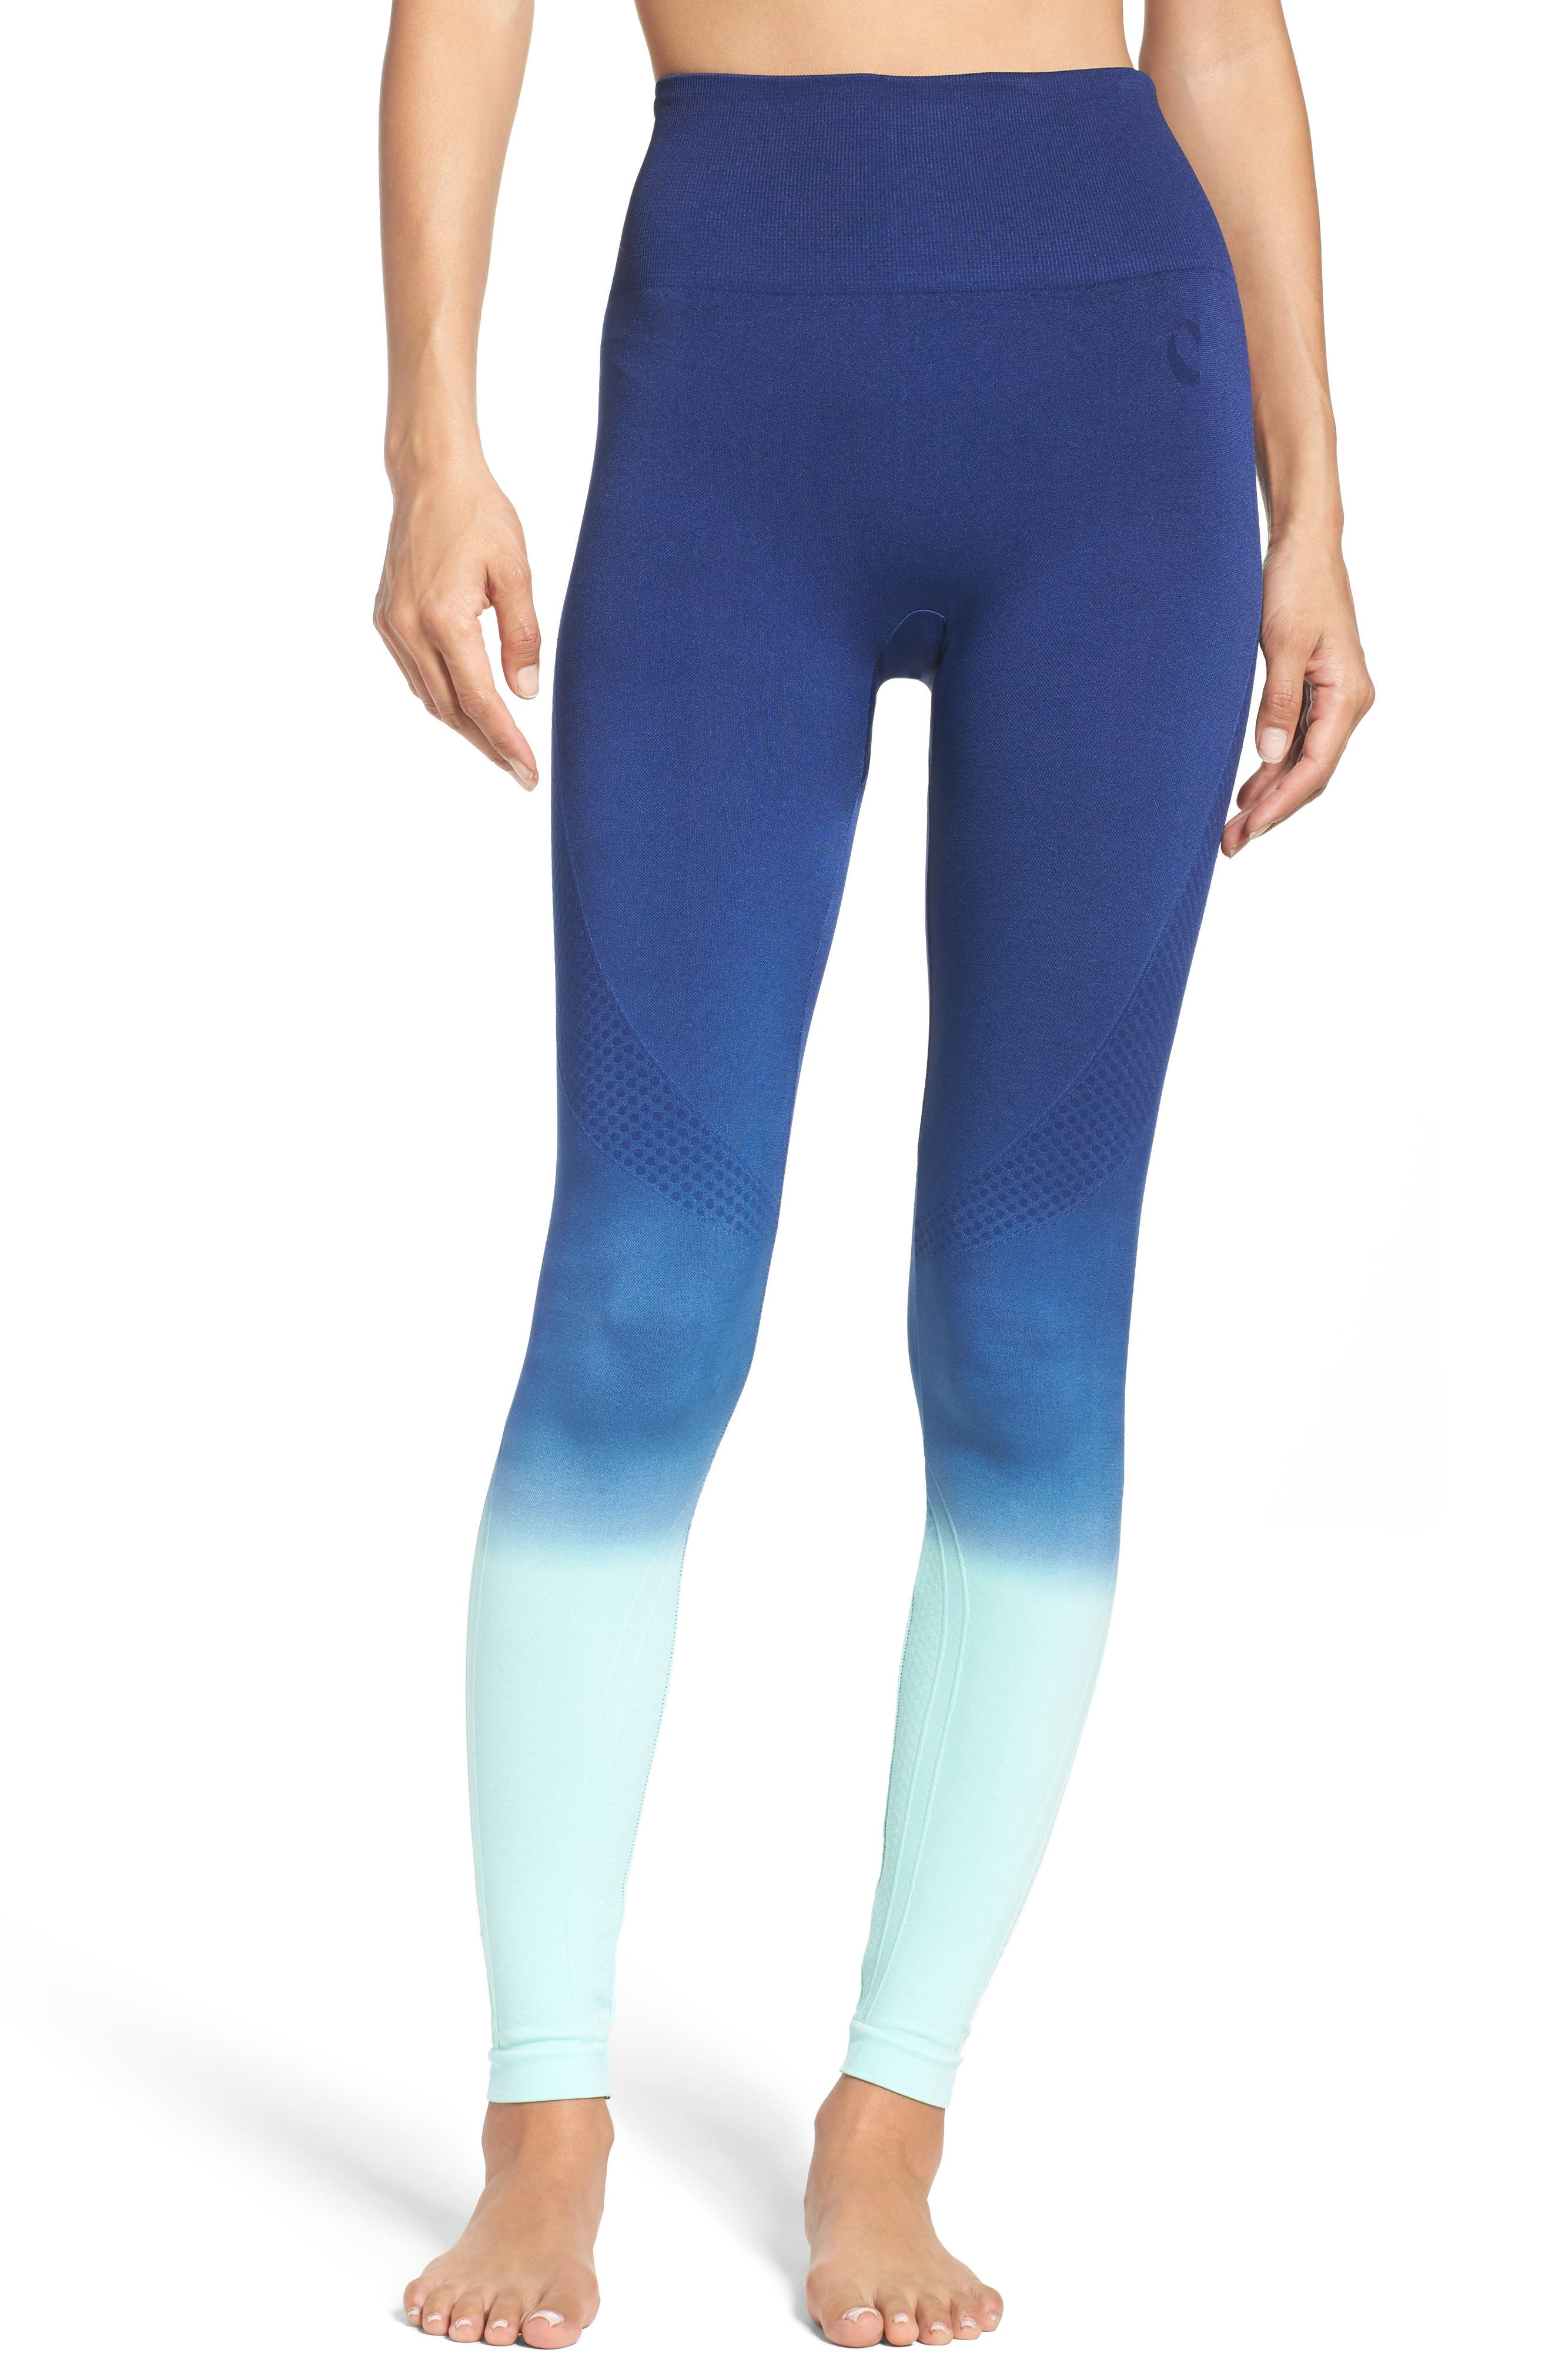 Main Image - Climawear Set the Pace High Waist Leggings